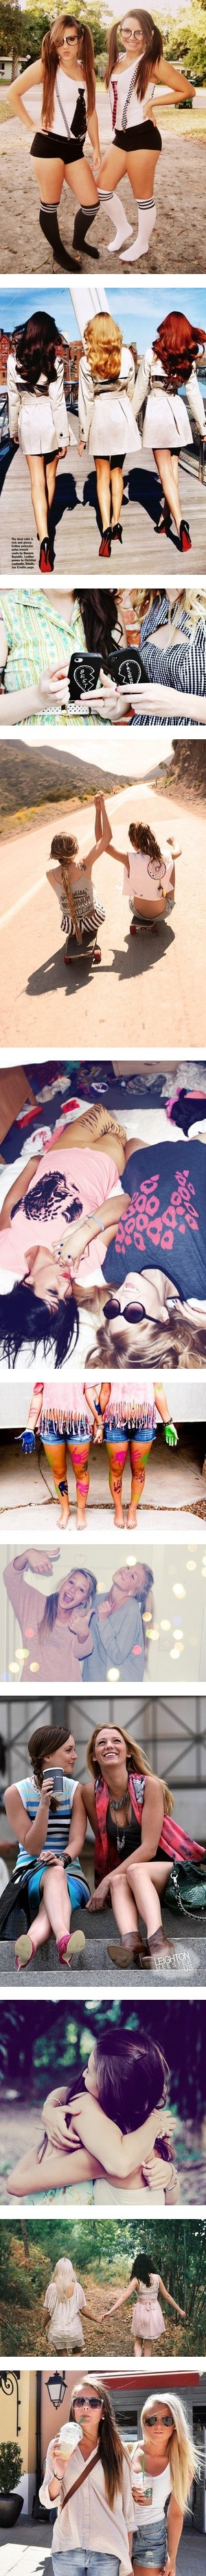 """""""Best Friends"""" by modee-uae ❤ liked on Polyvore"""